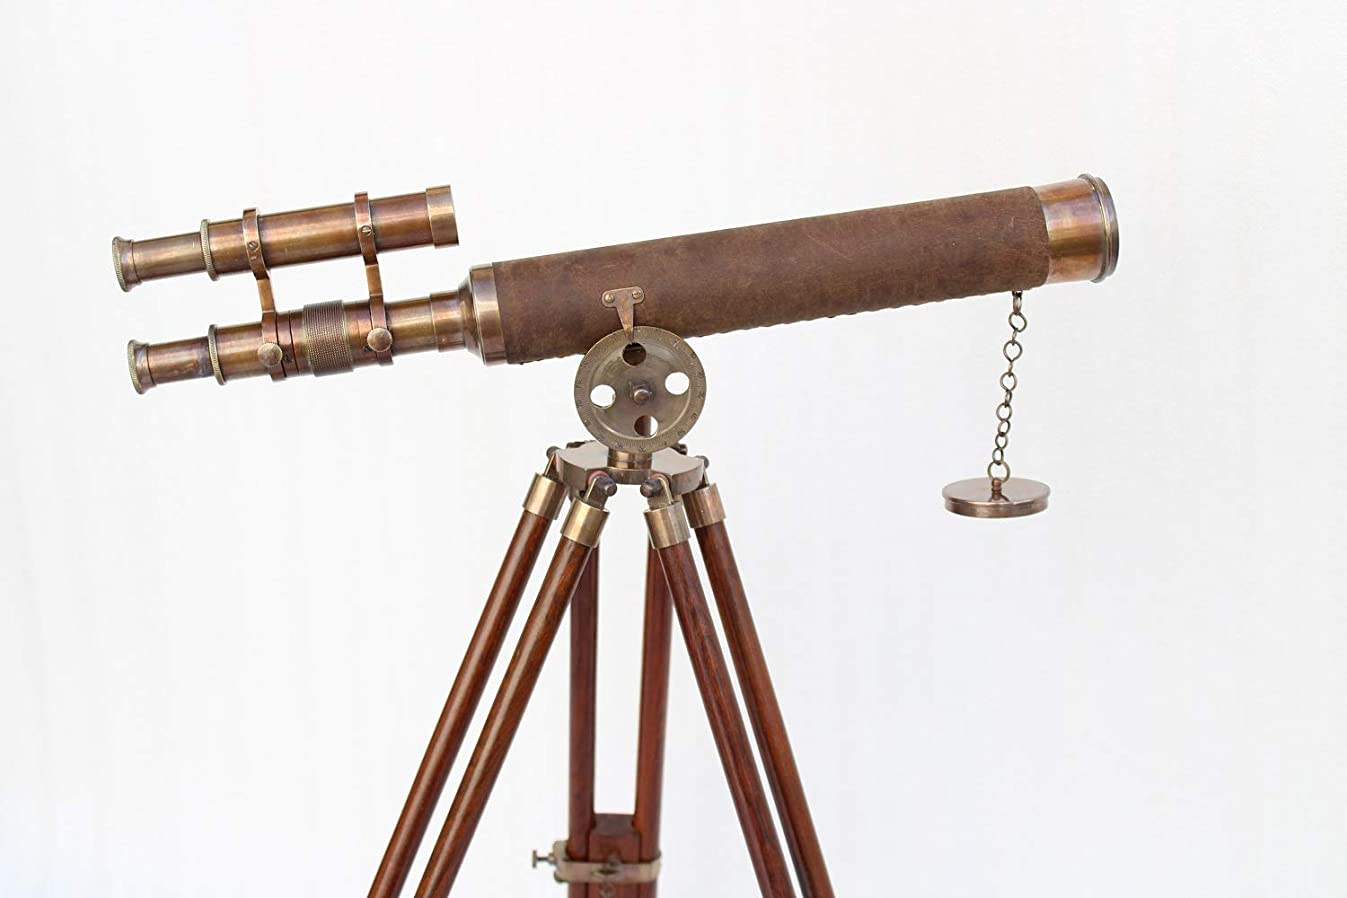 US HANDICRAFTS Vintage Nautical Antique Style Double Barrel Telescope in Brown Antique Pure Leather 18 INCH with Wooden Brown Tripod.